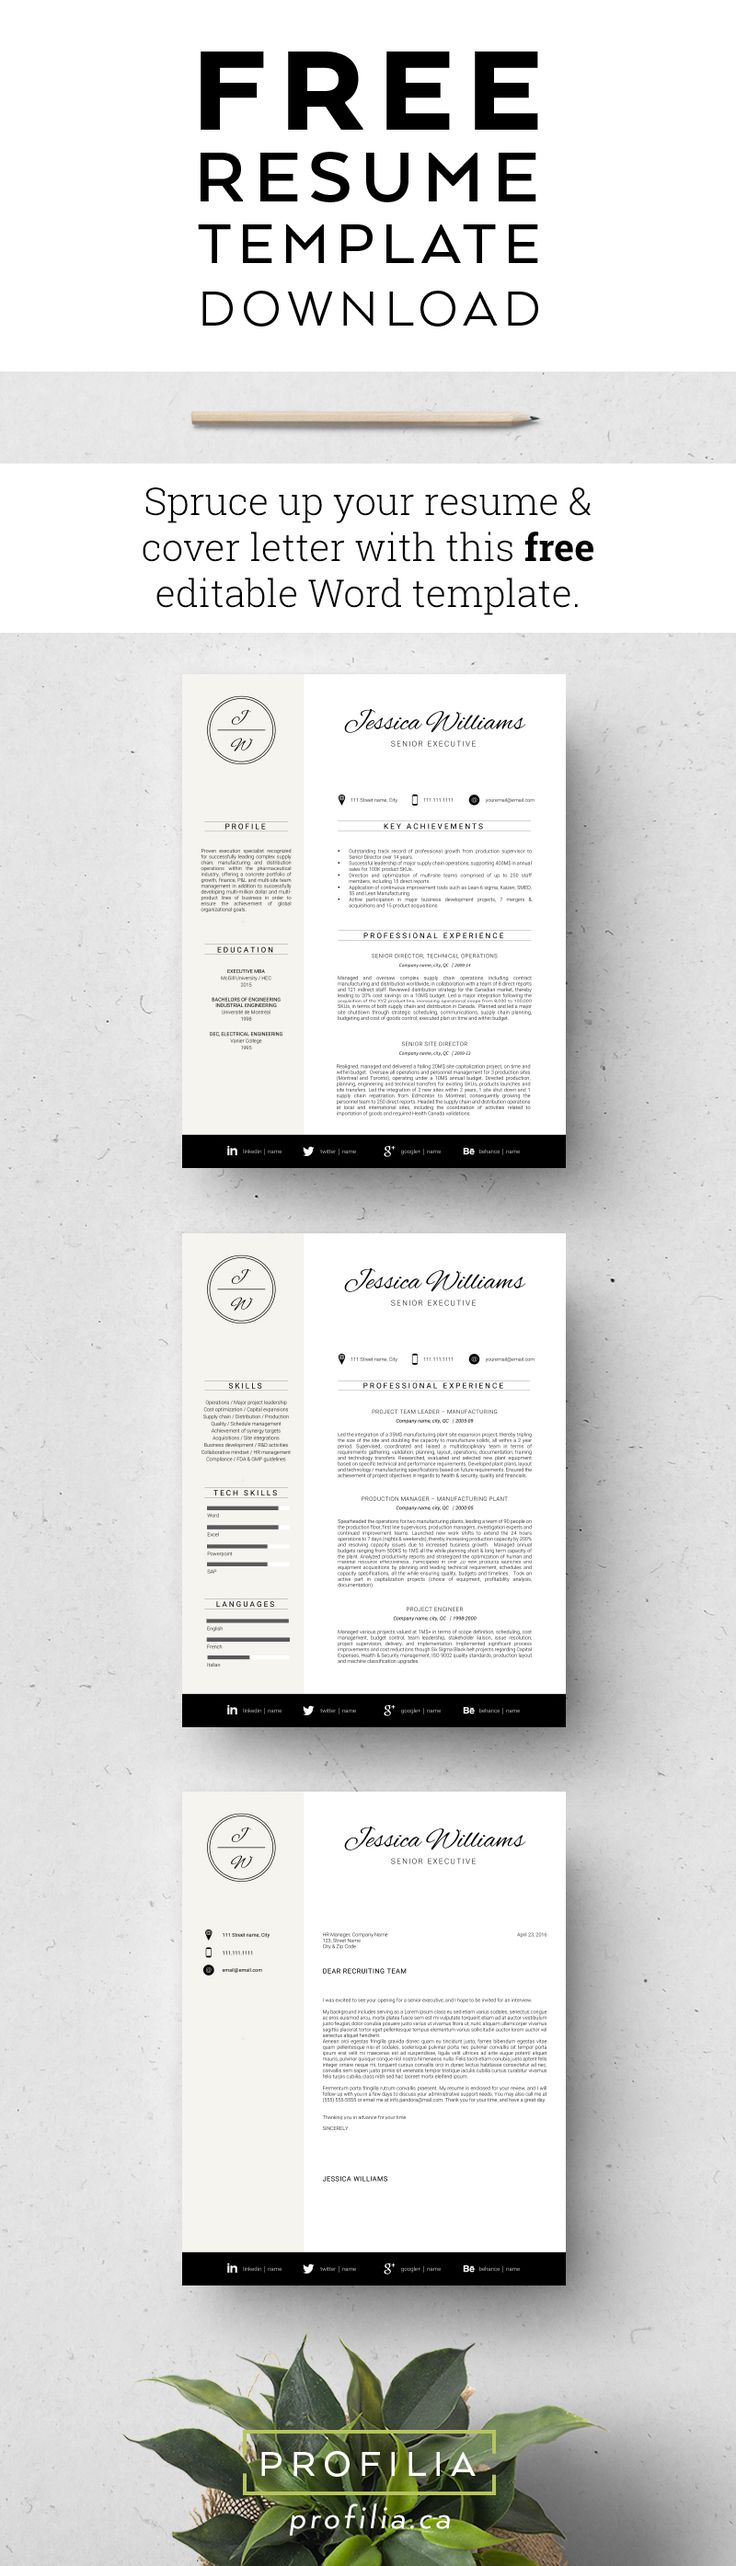 Free Resume Template   Refresh Your Job Search With This Free Resume U0026 Cover U2026  Free Resume And Cover Letter Templates